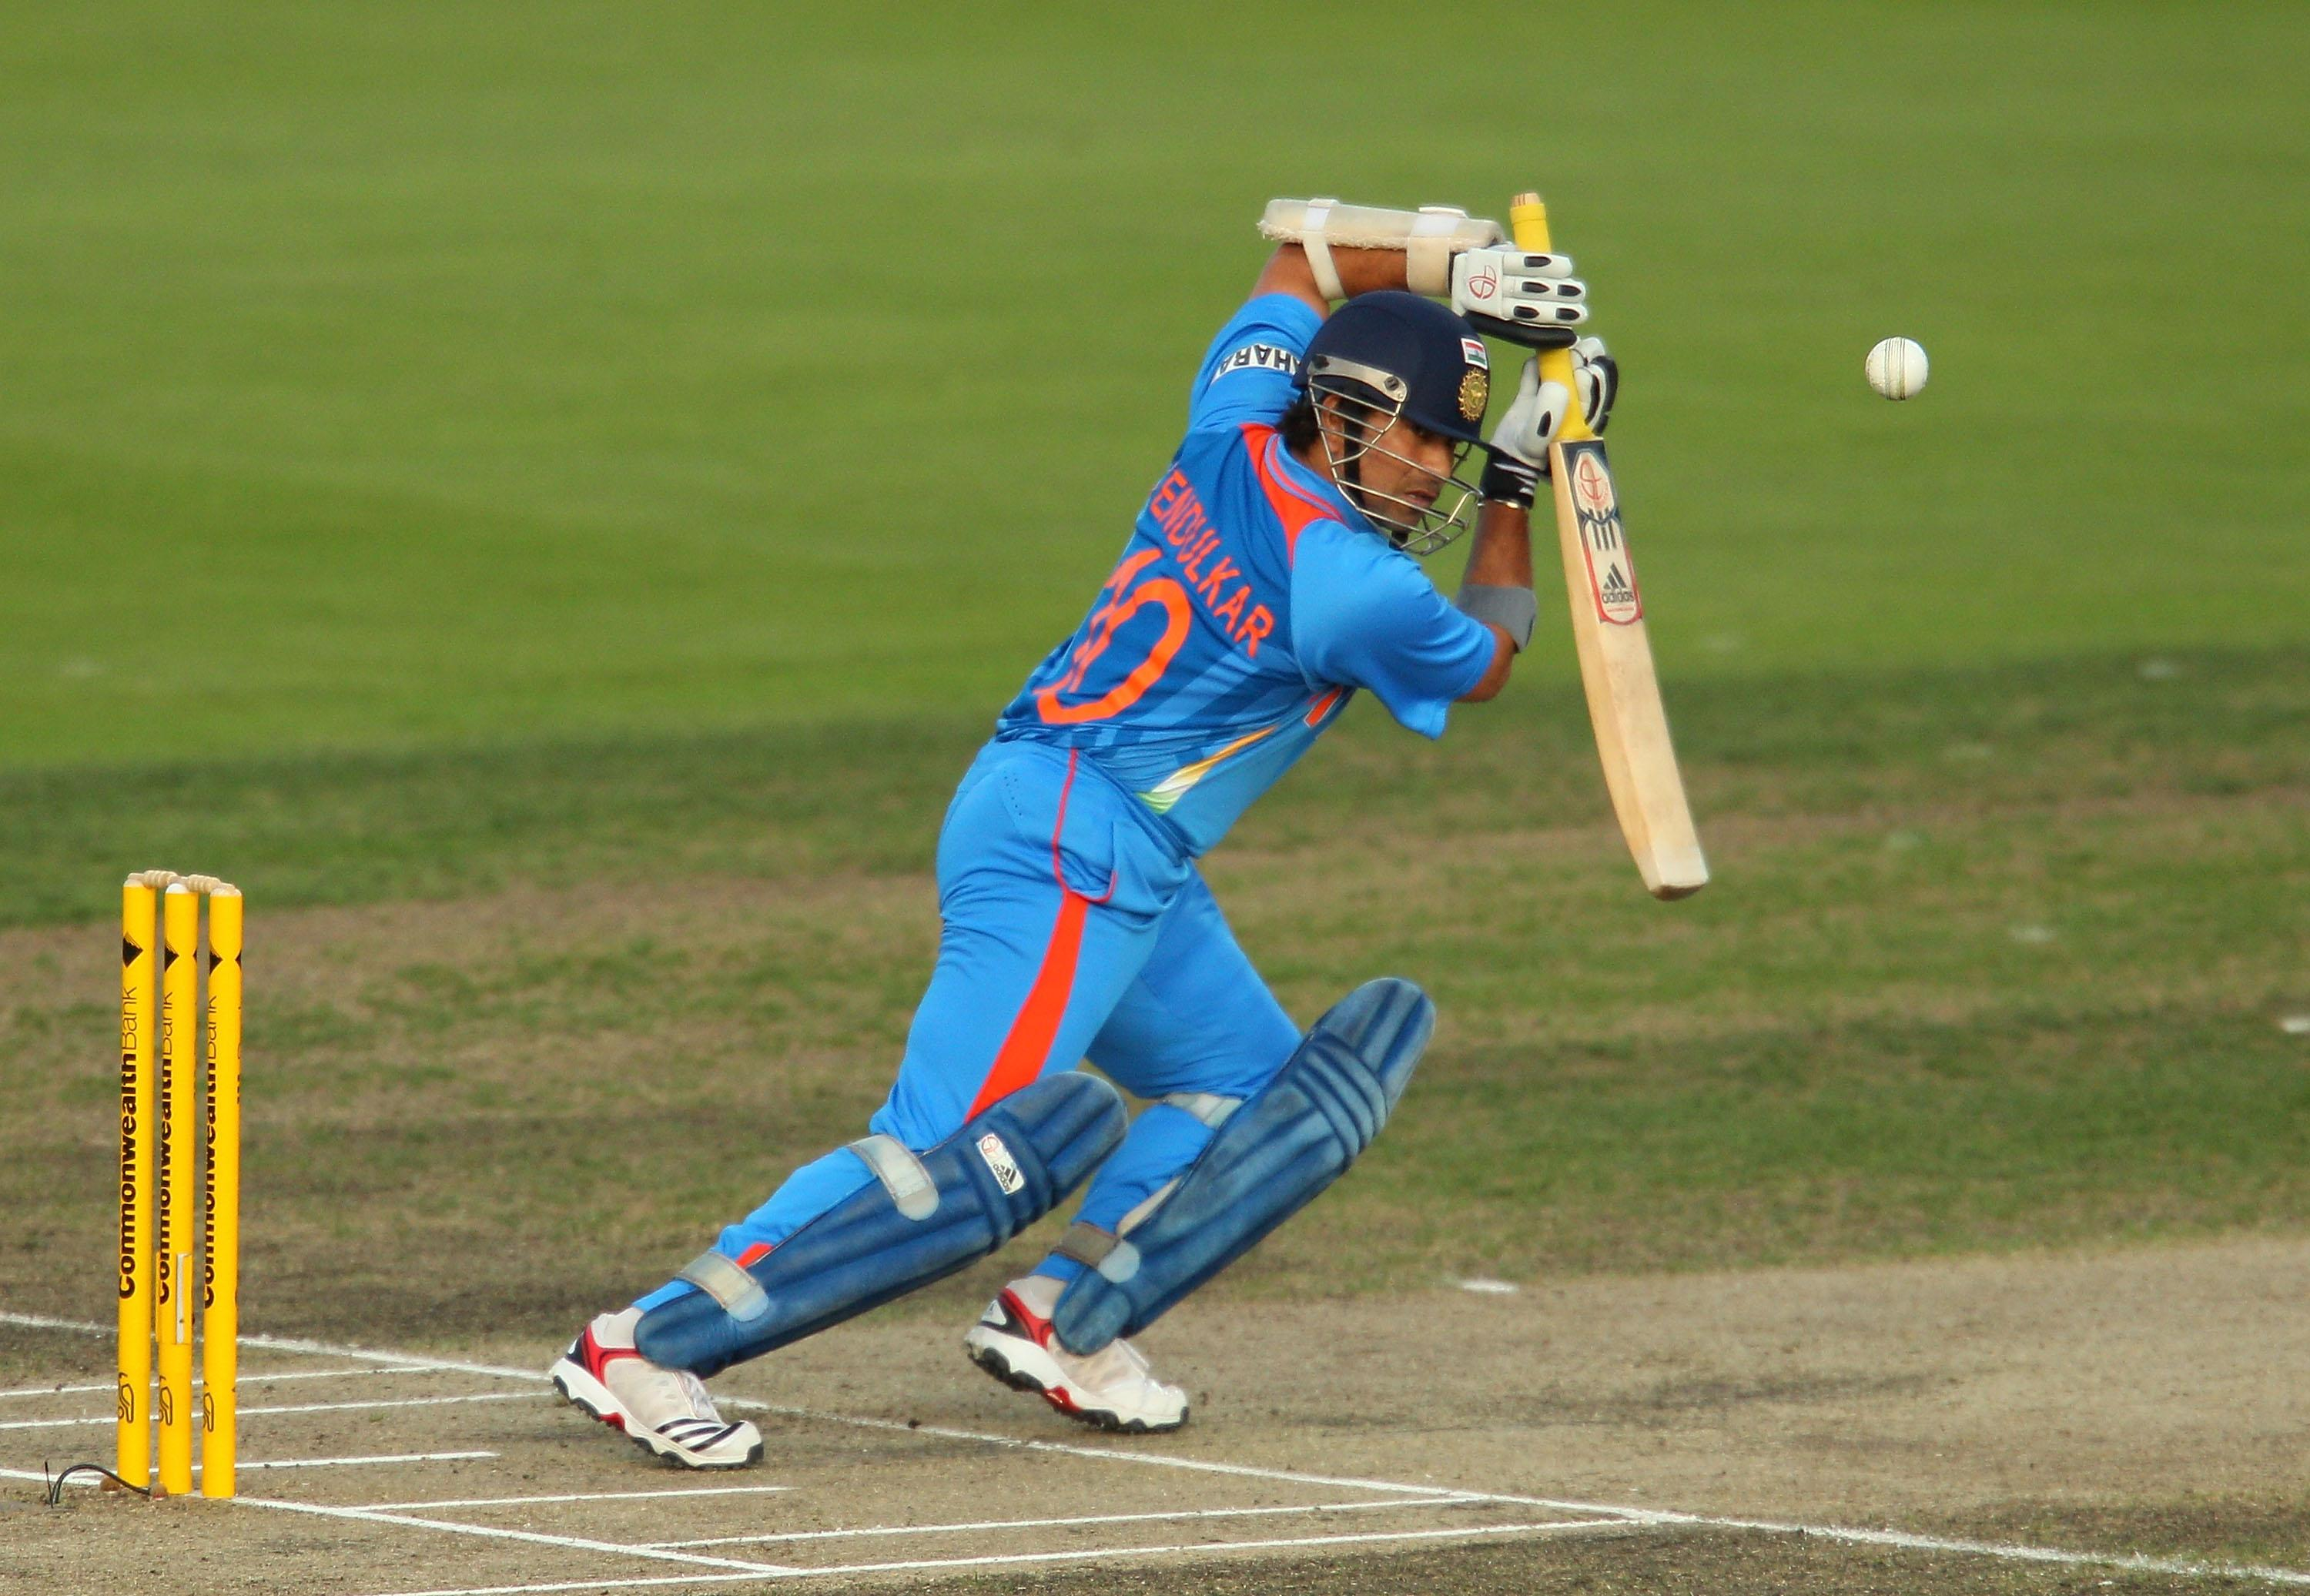 Sachin Tendulkar Batting Stance Pictures and Images